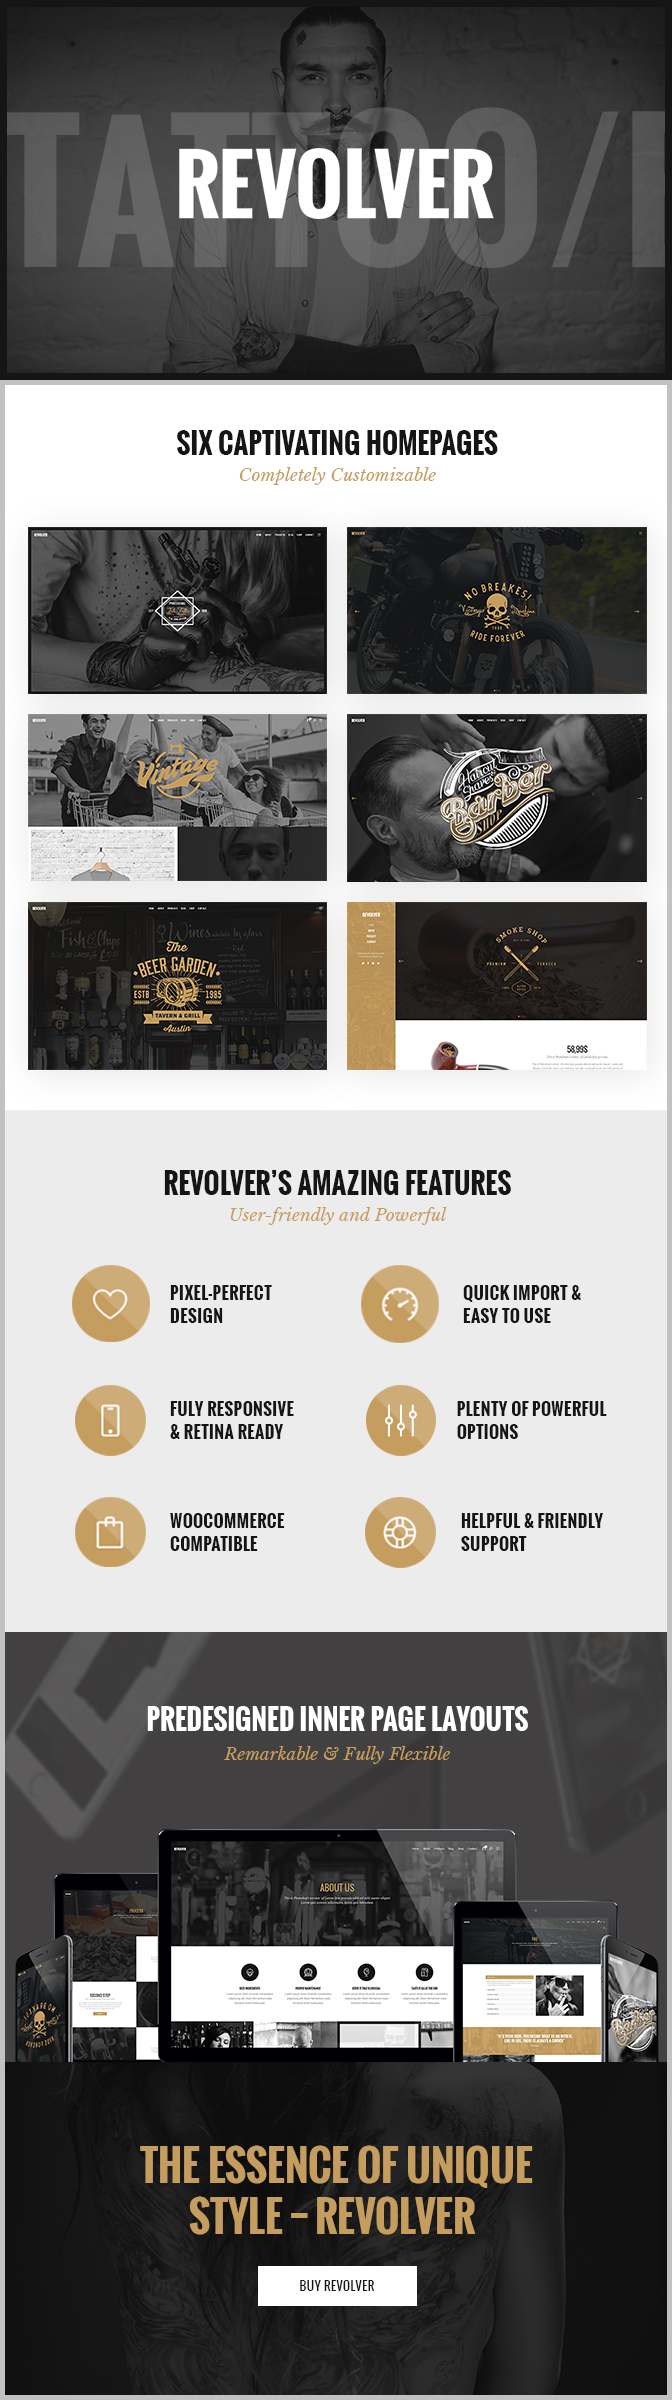 Revolver – A Gentlemen's Theme for Tattoo Salons, Barbershops, Pubs and Biker Clubs (Retail)